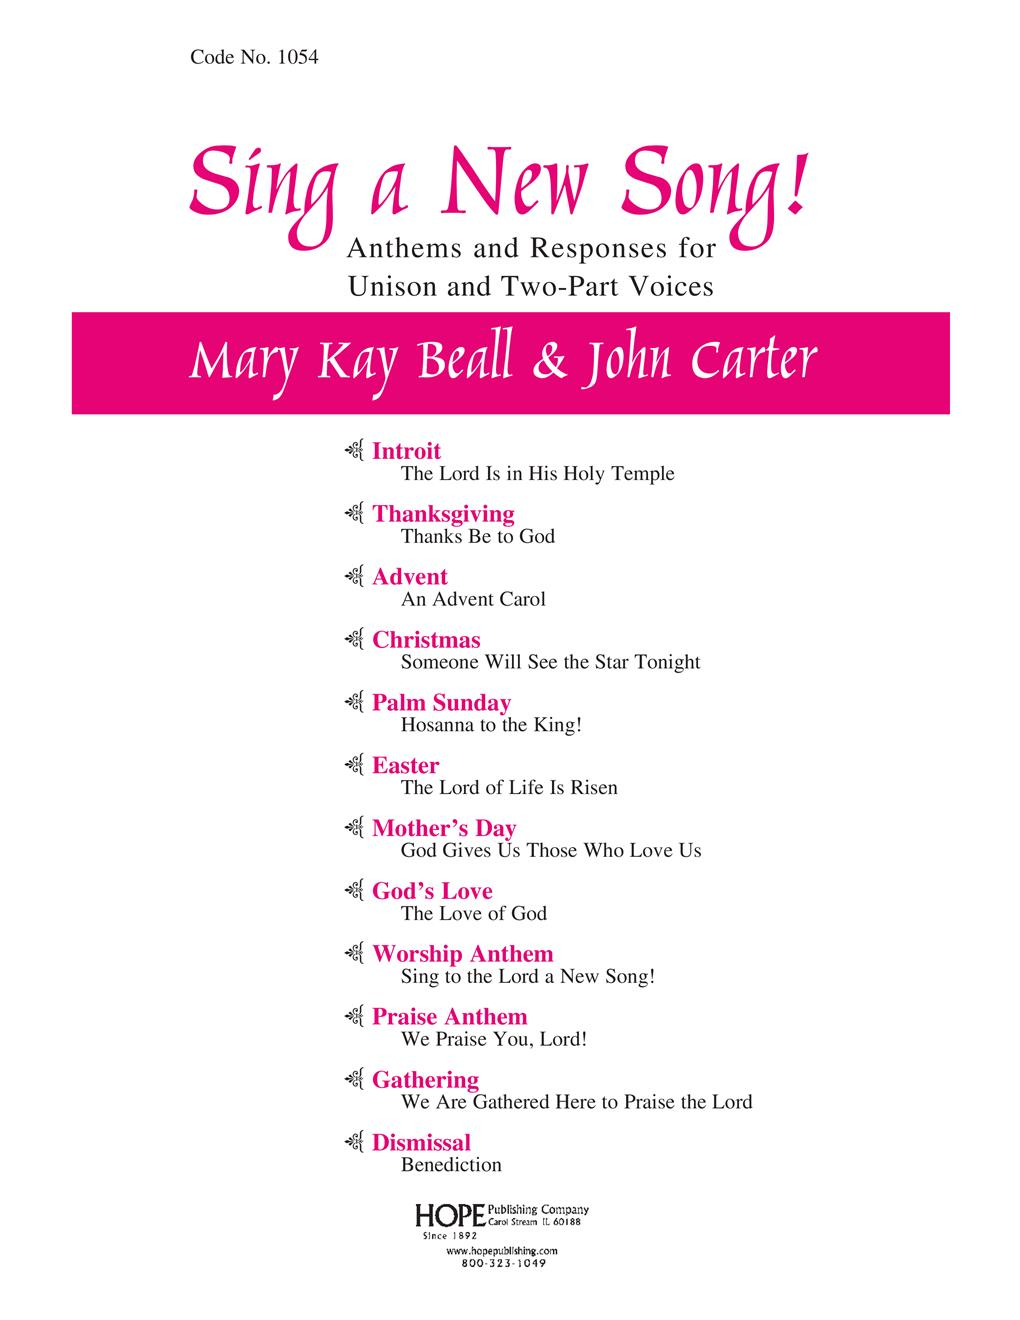 SING A NEW SONG! - Cover Image